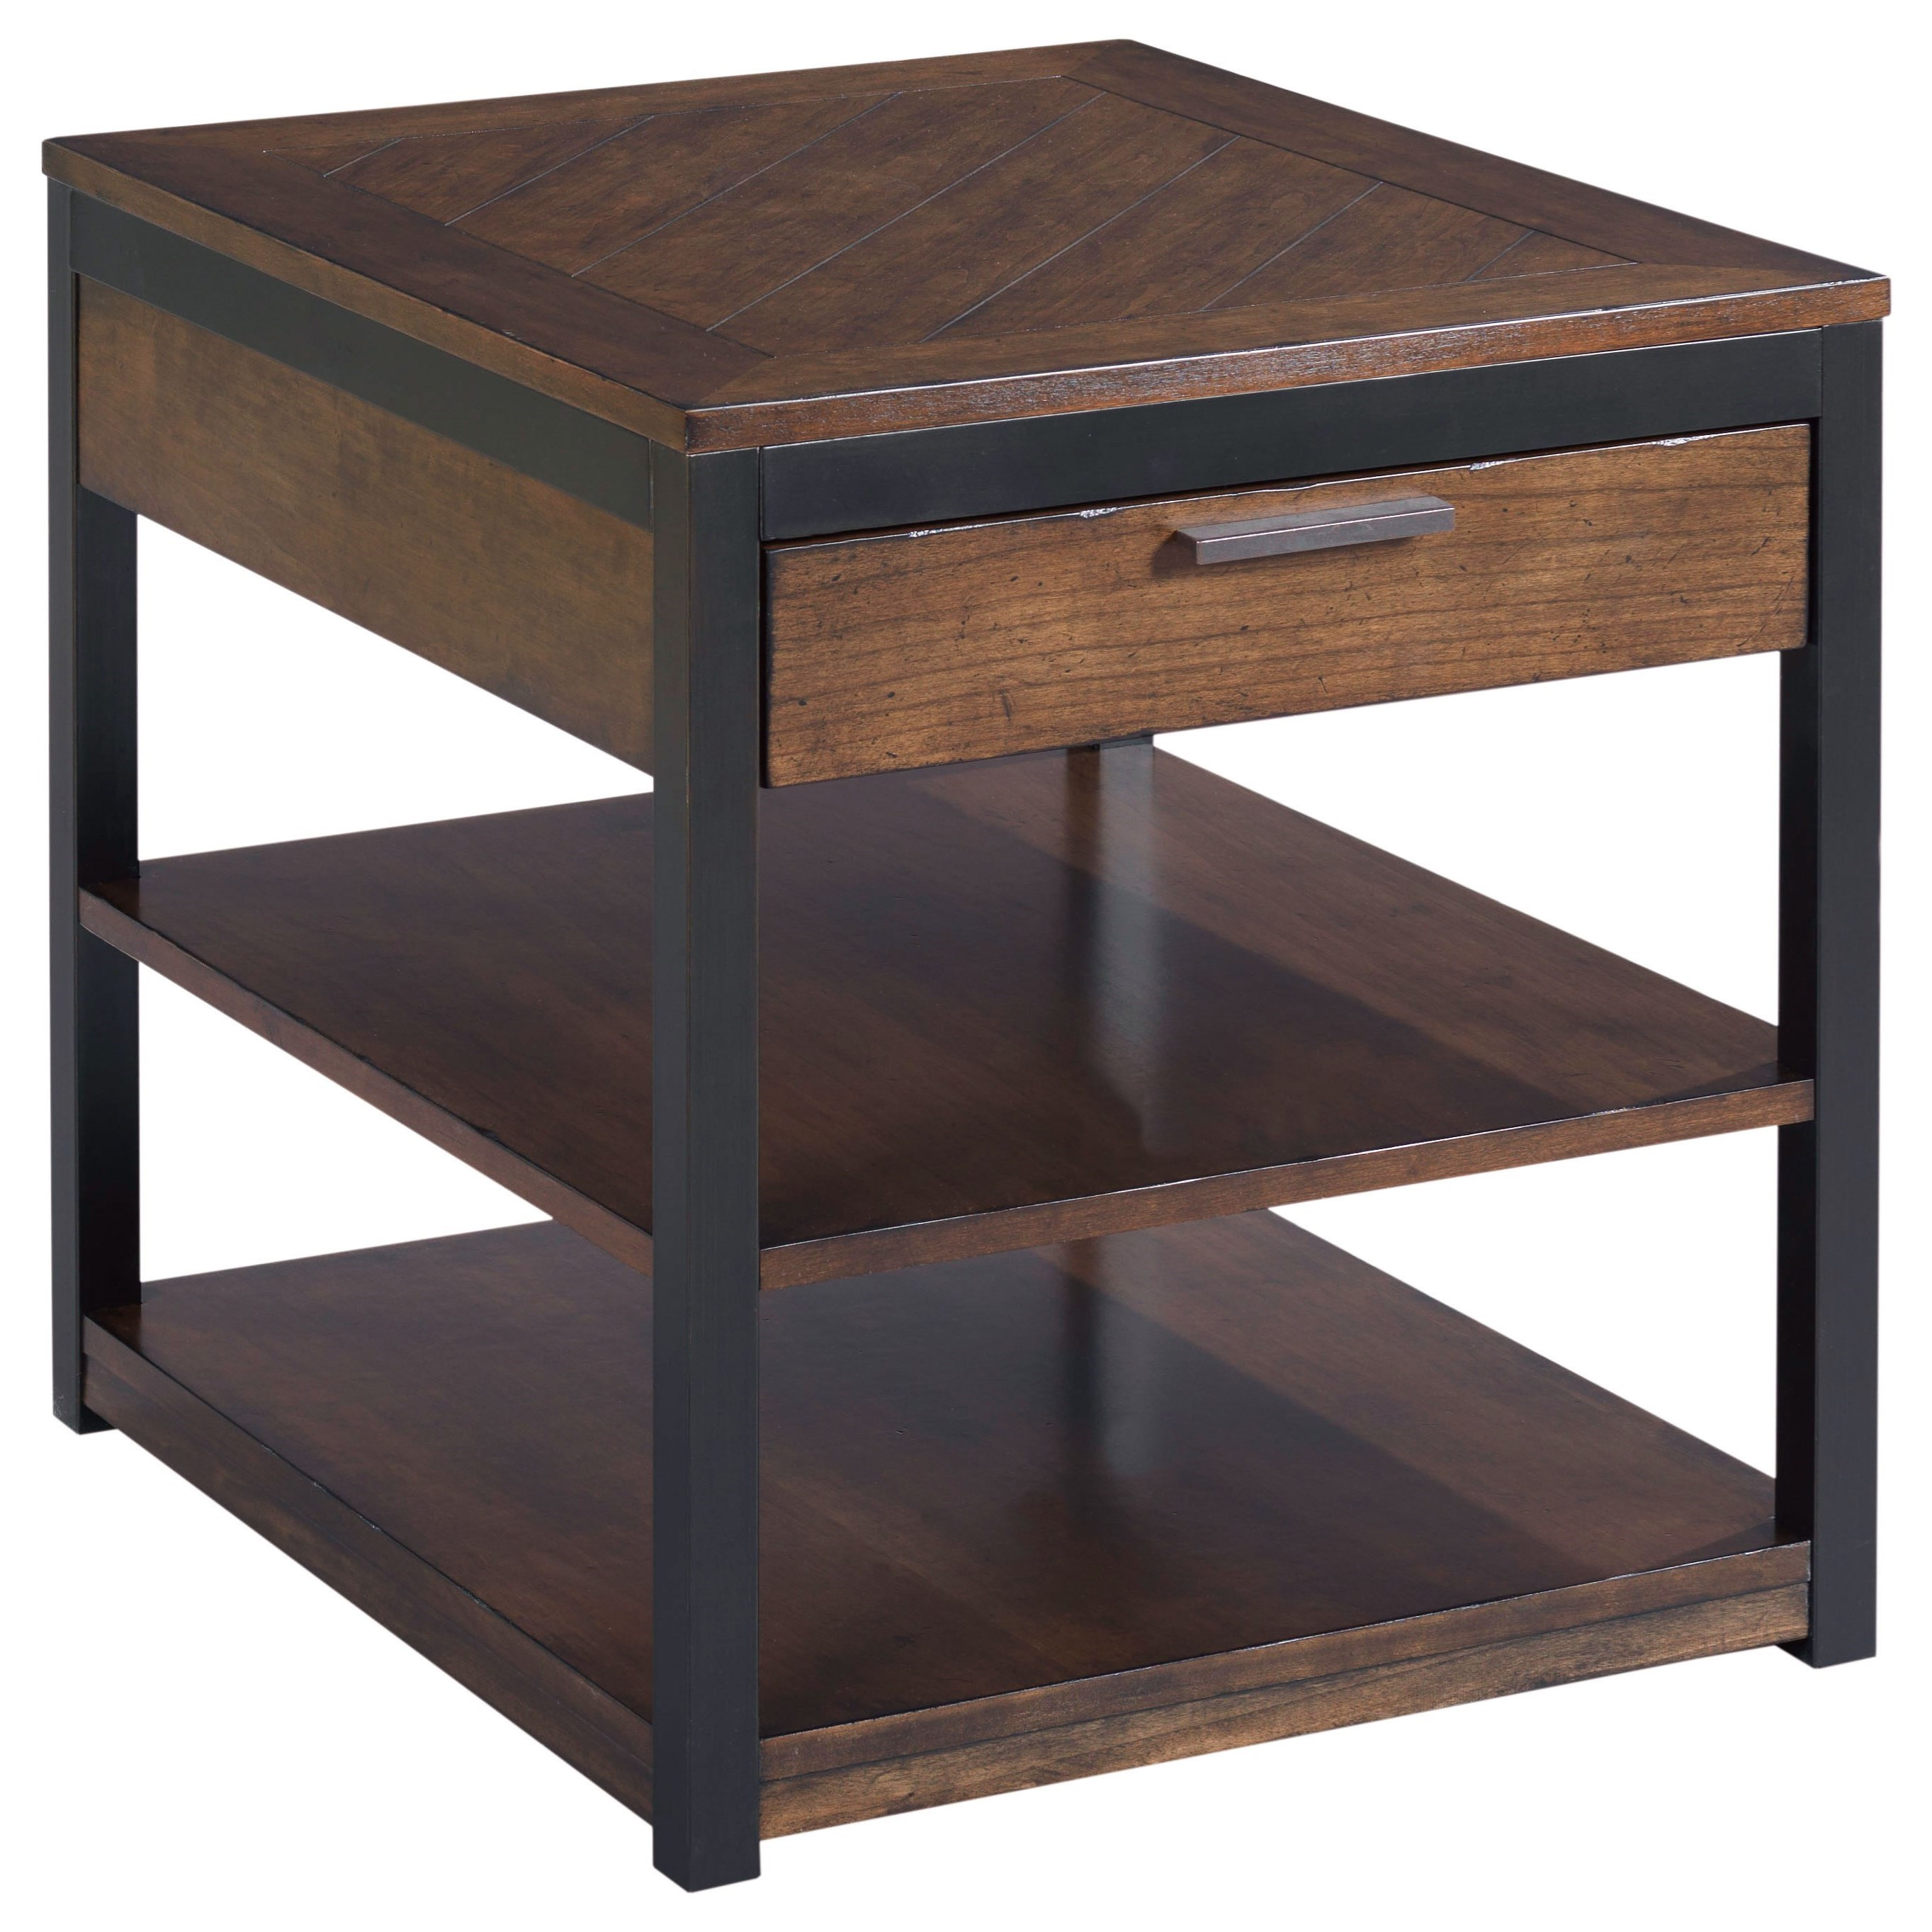 Franklin Rectangular Drawer End Table by Hammary at Alison Craig Home Furnishings